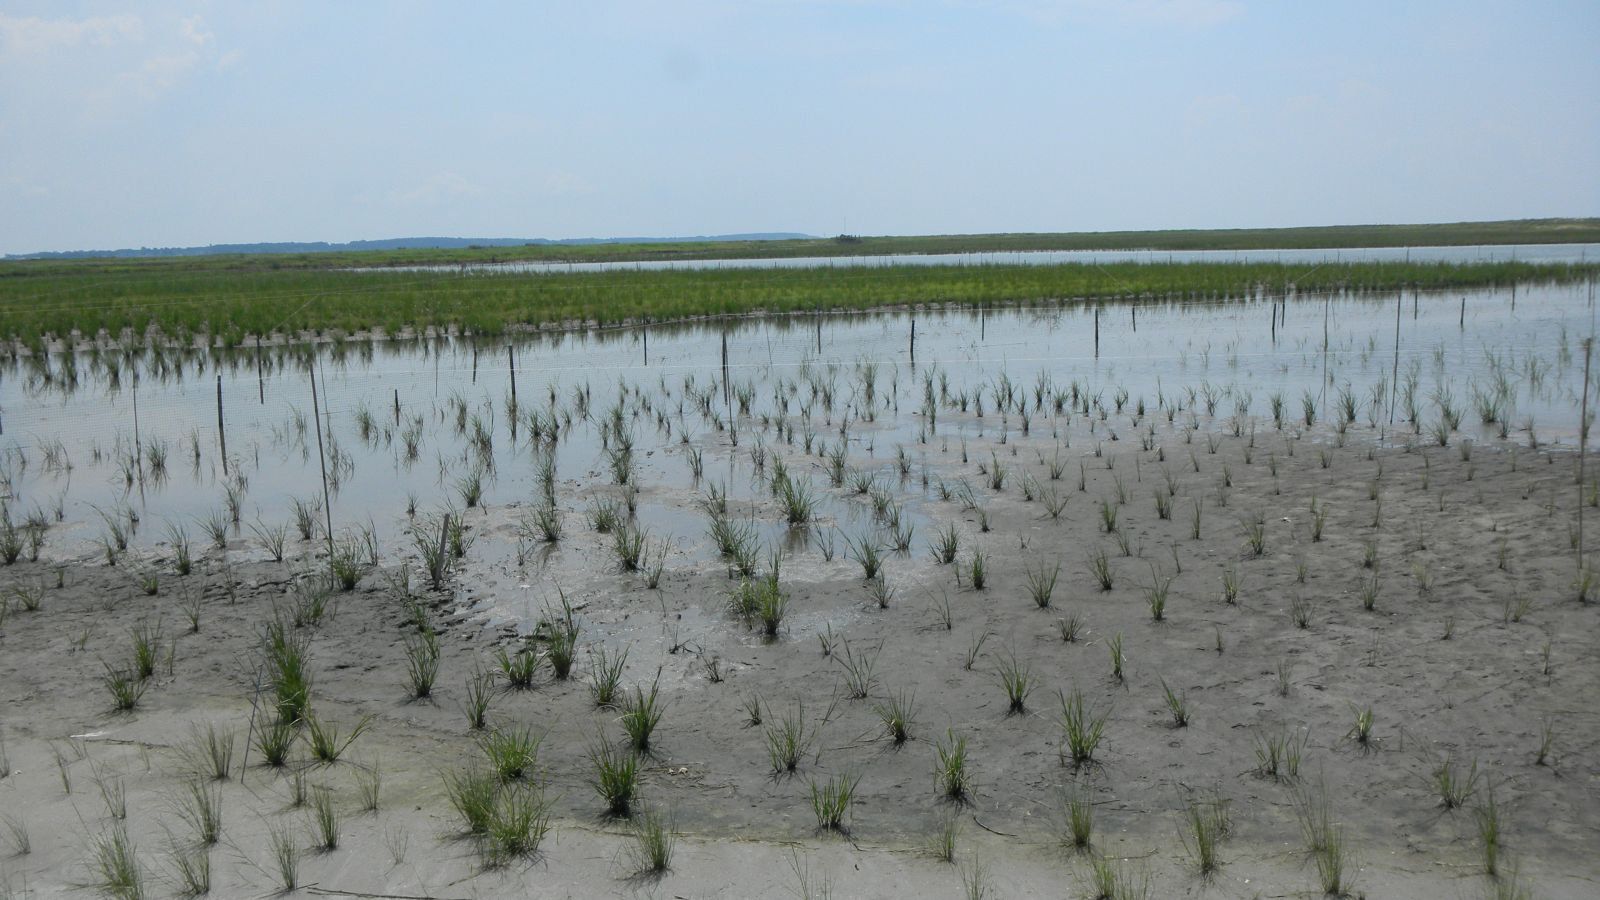 New plantings help complete the restoration at Poplar Island